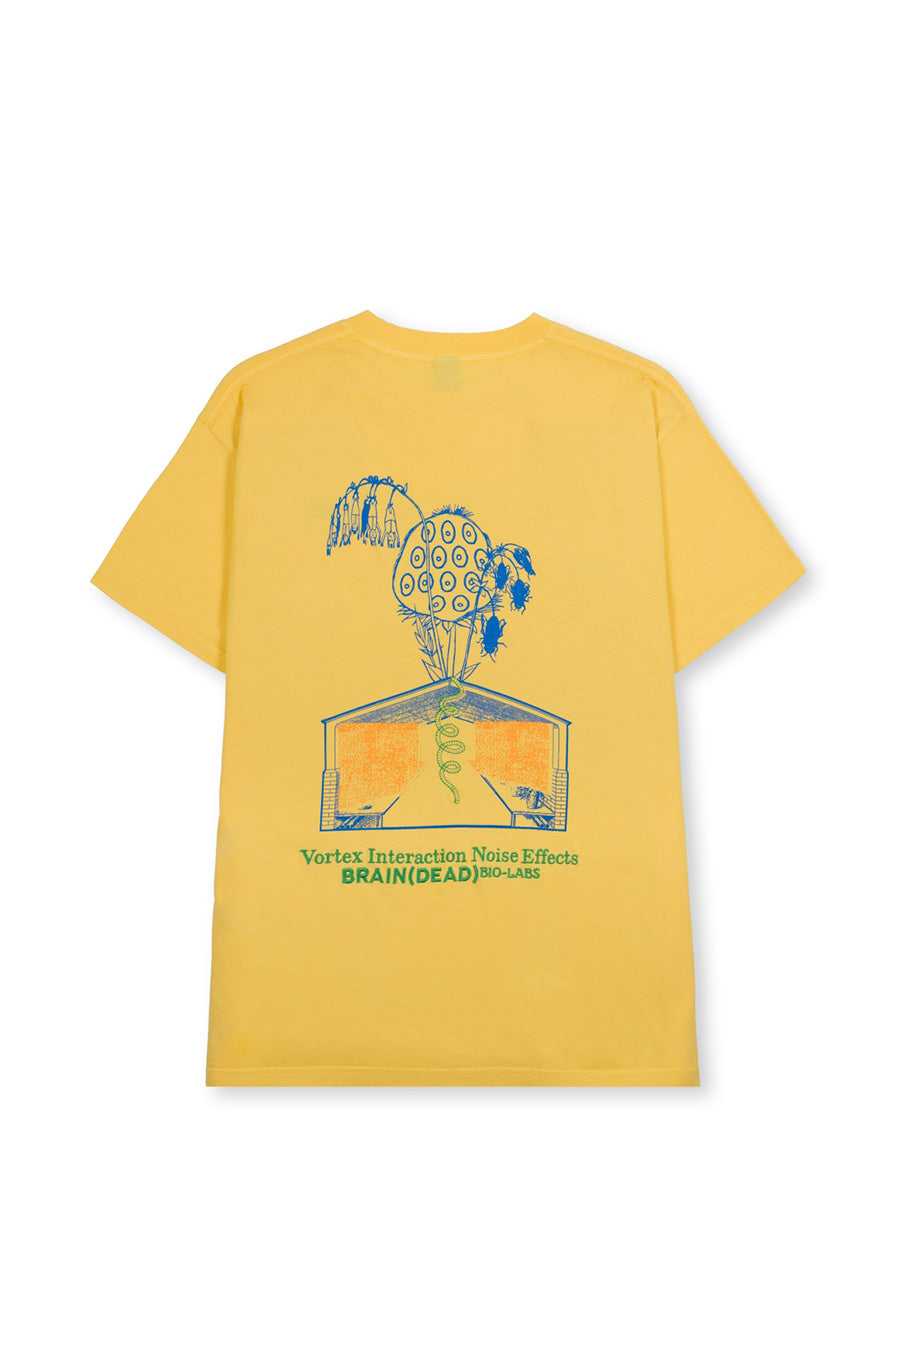 Brain Dead - Yellow Vortex Interaction Noise Effects T-Shirt